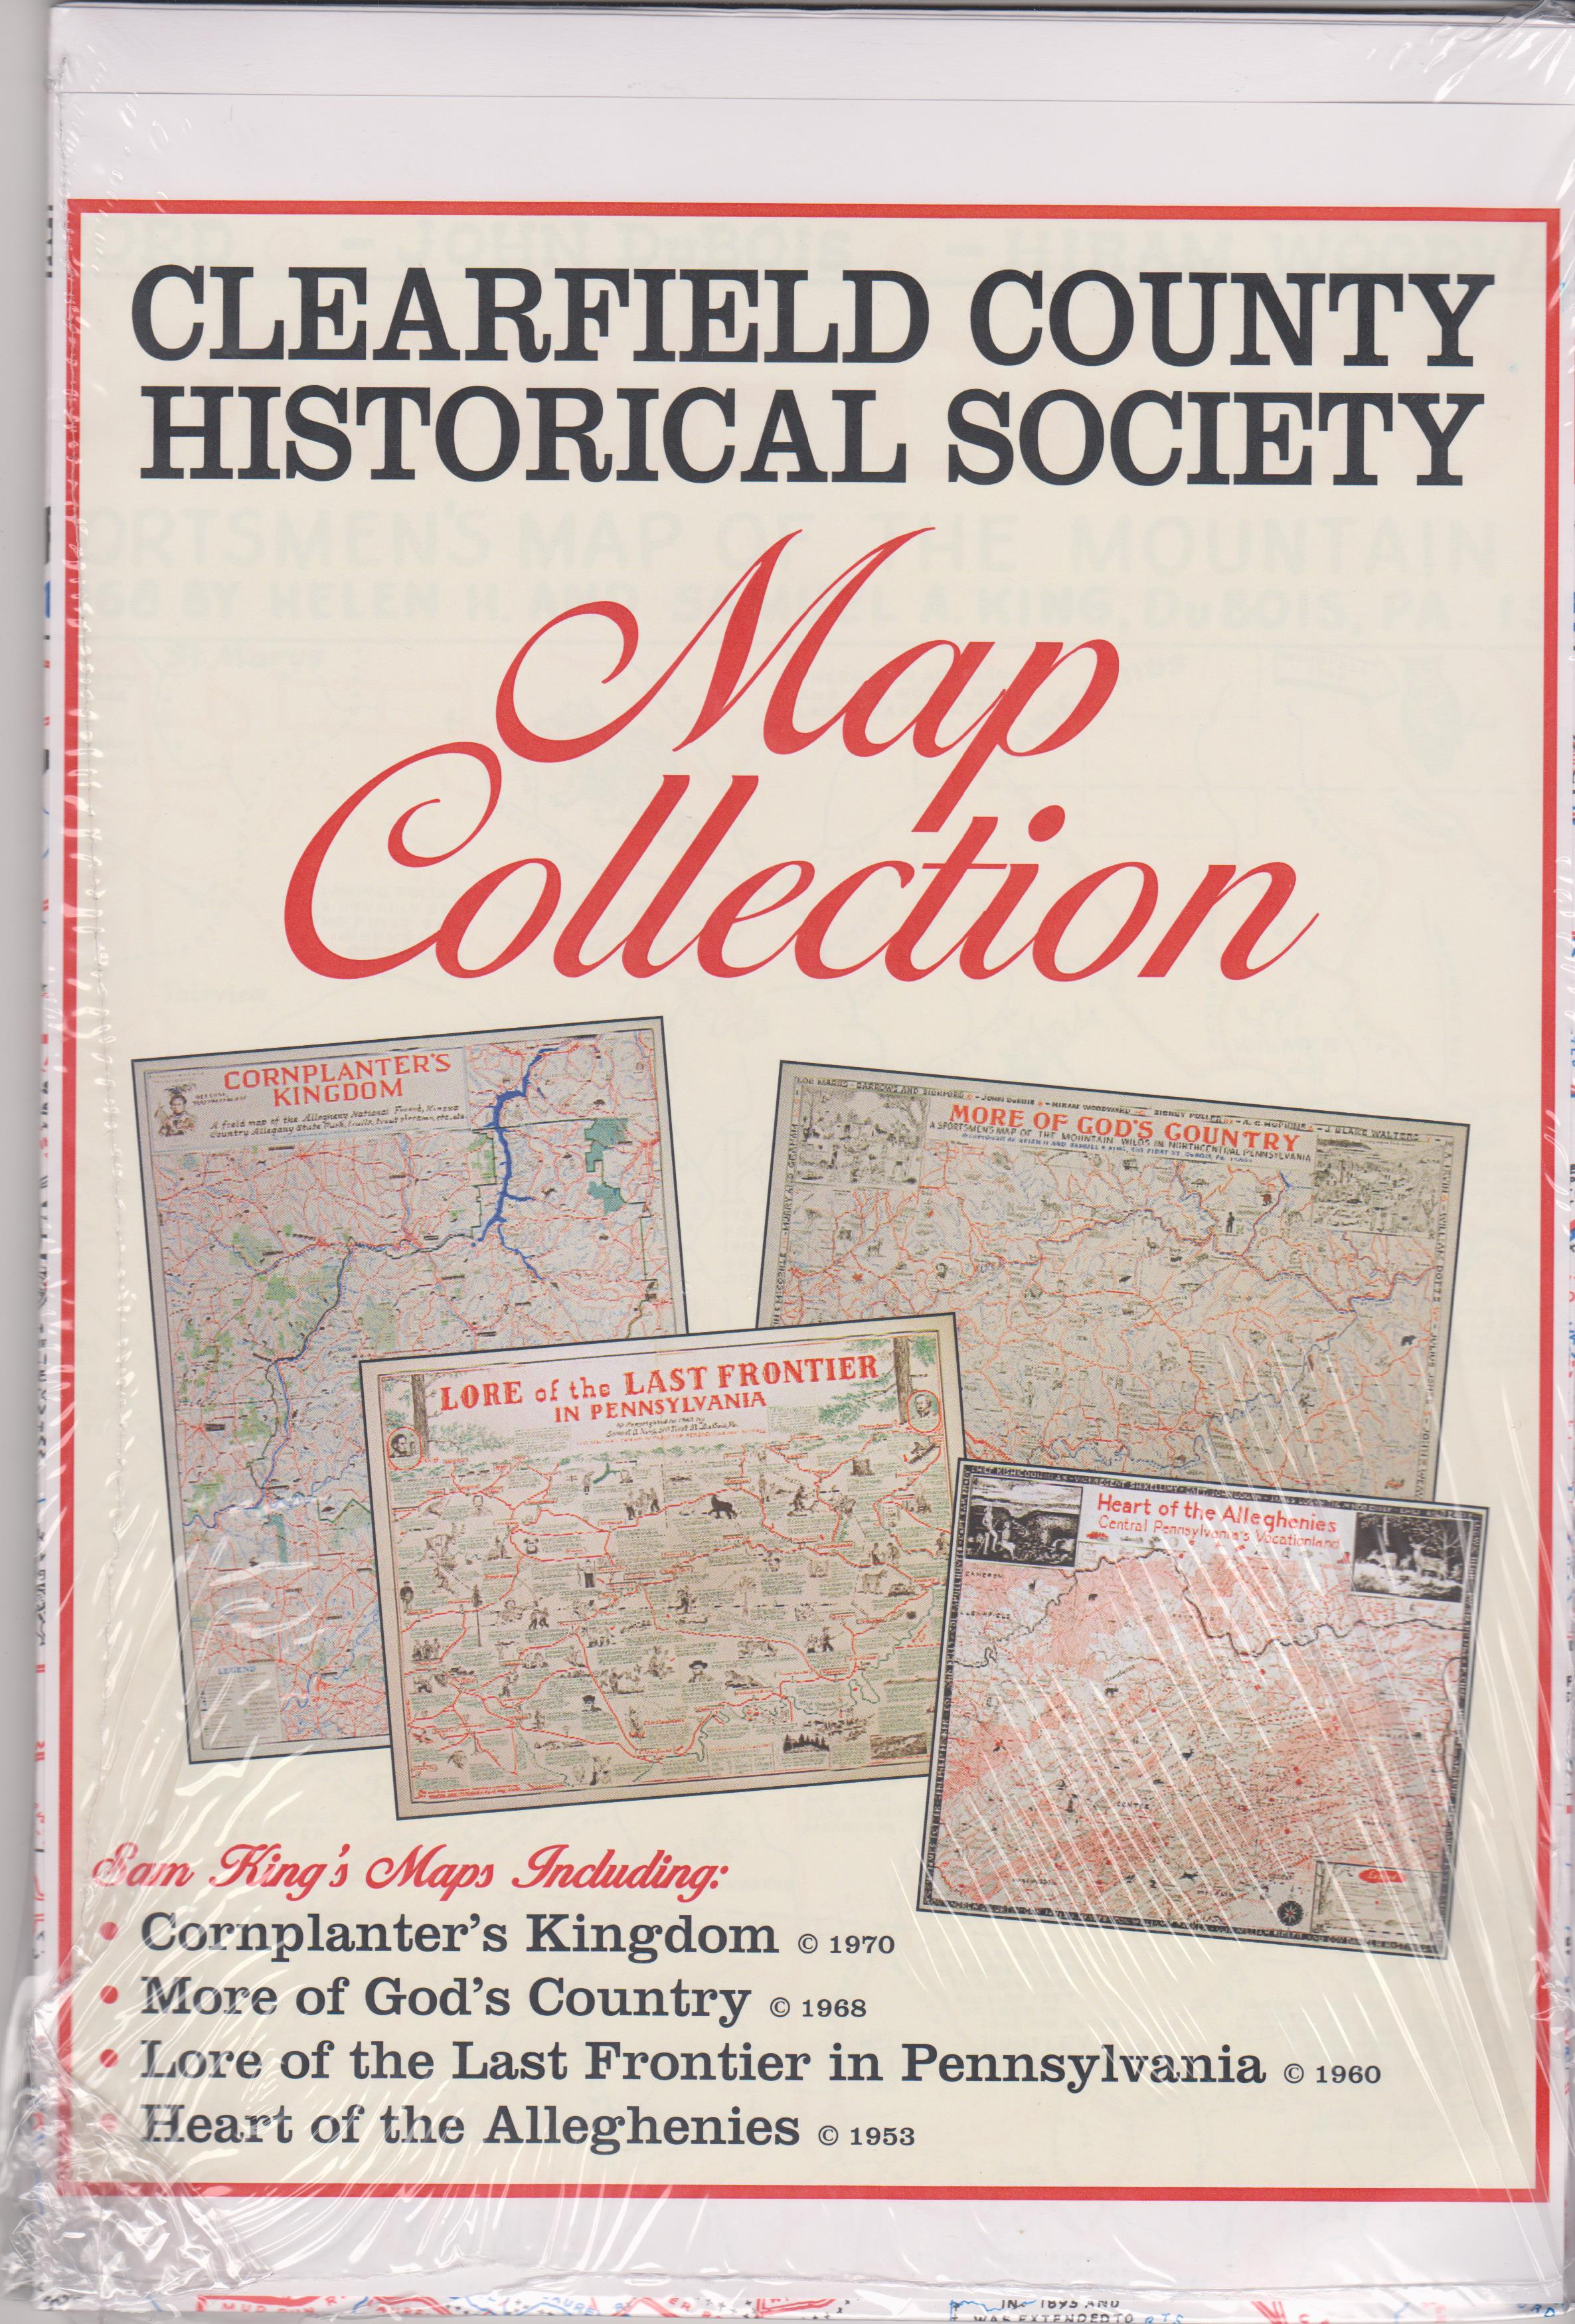 Buy Sam King's Maps, Collection #1 for $20.00.